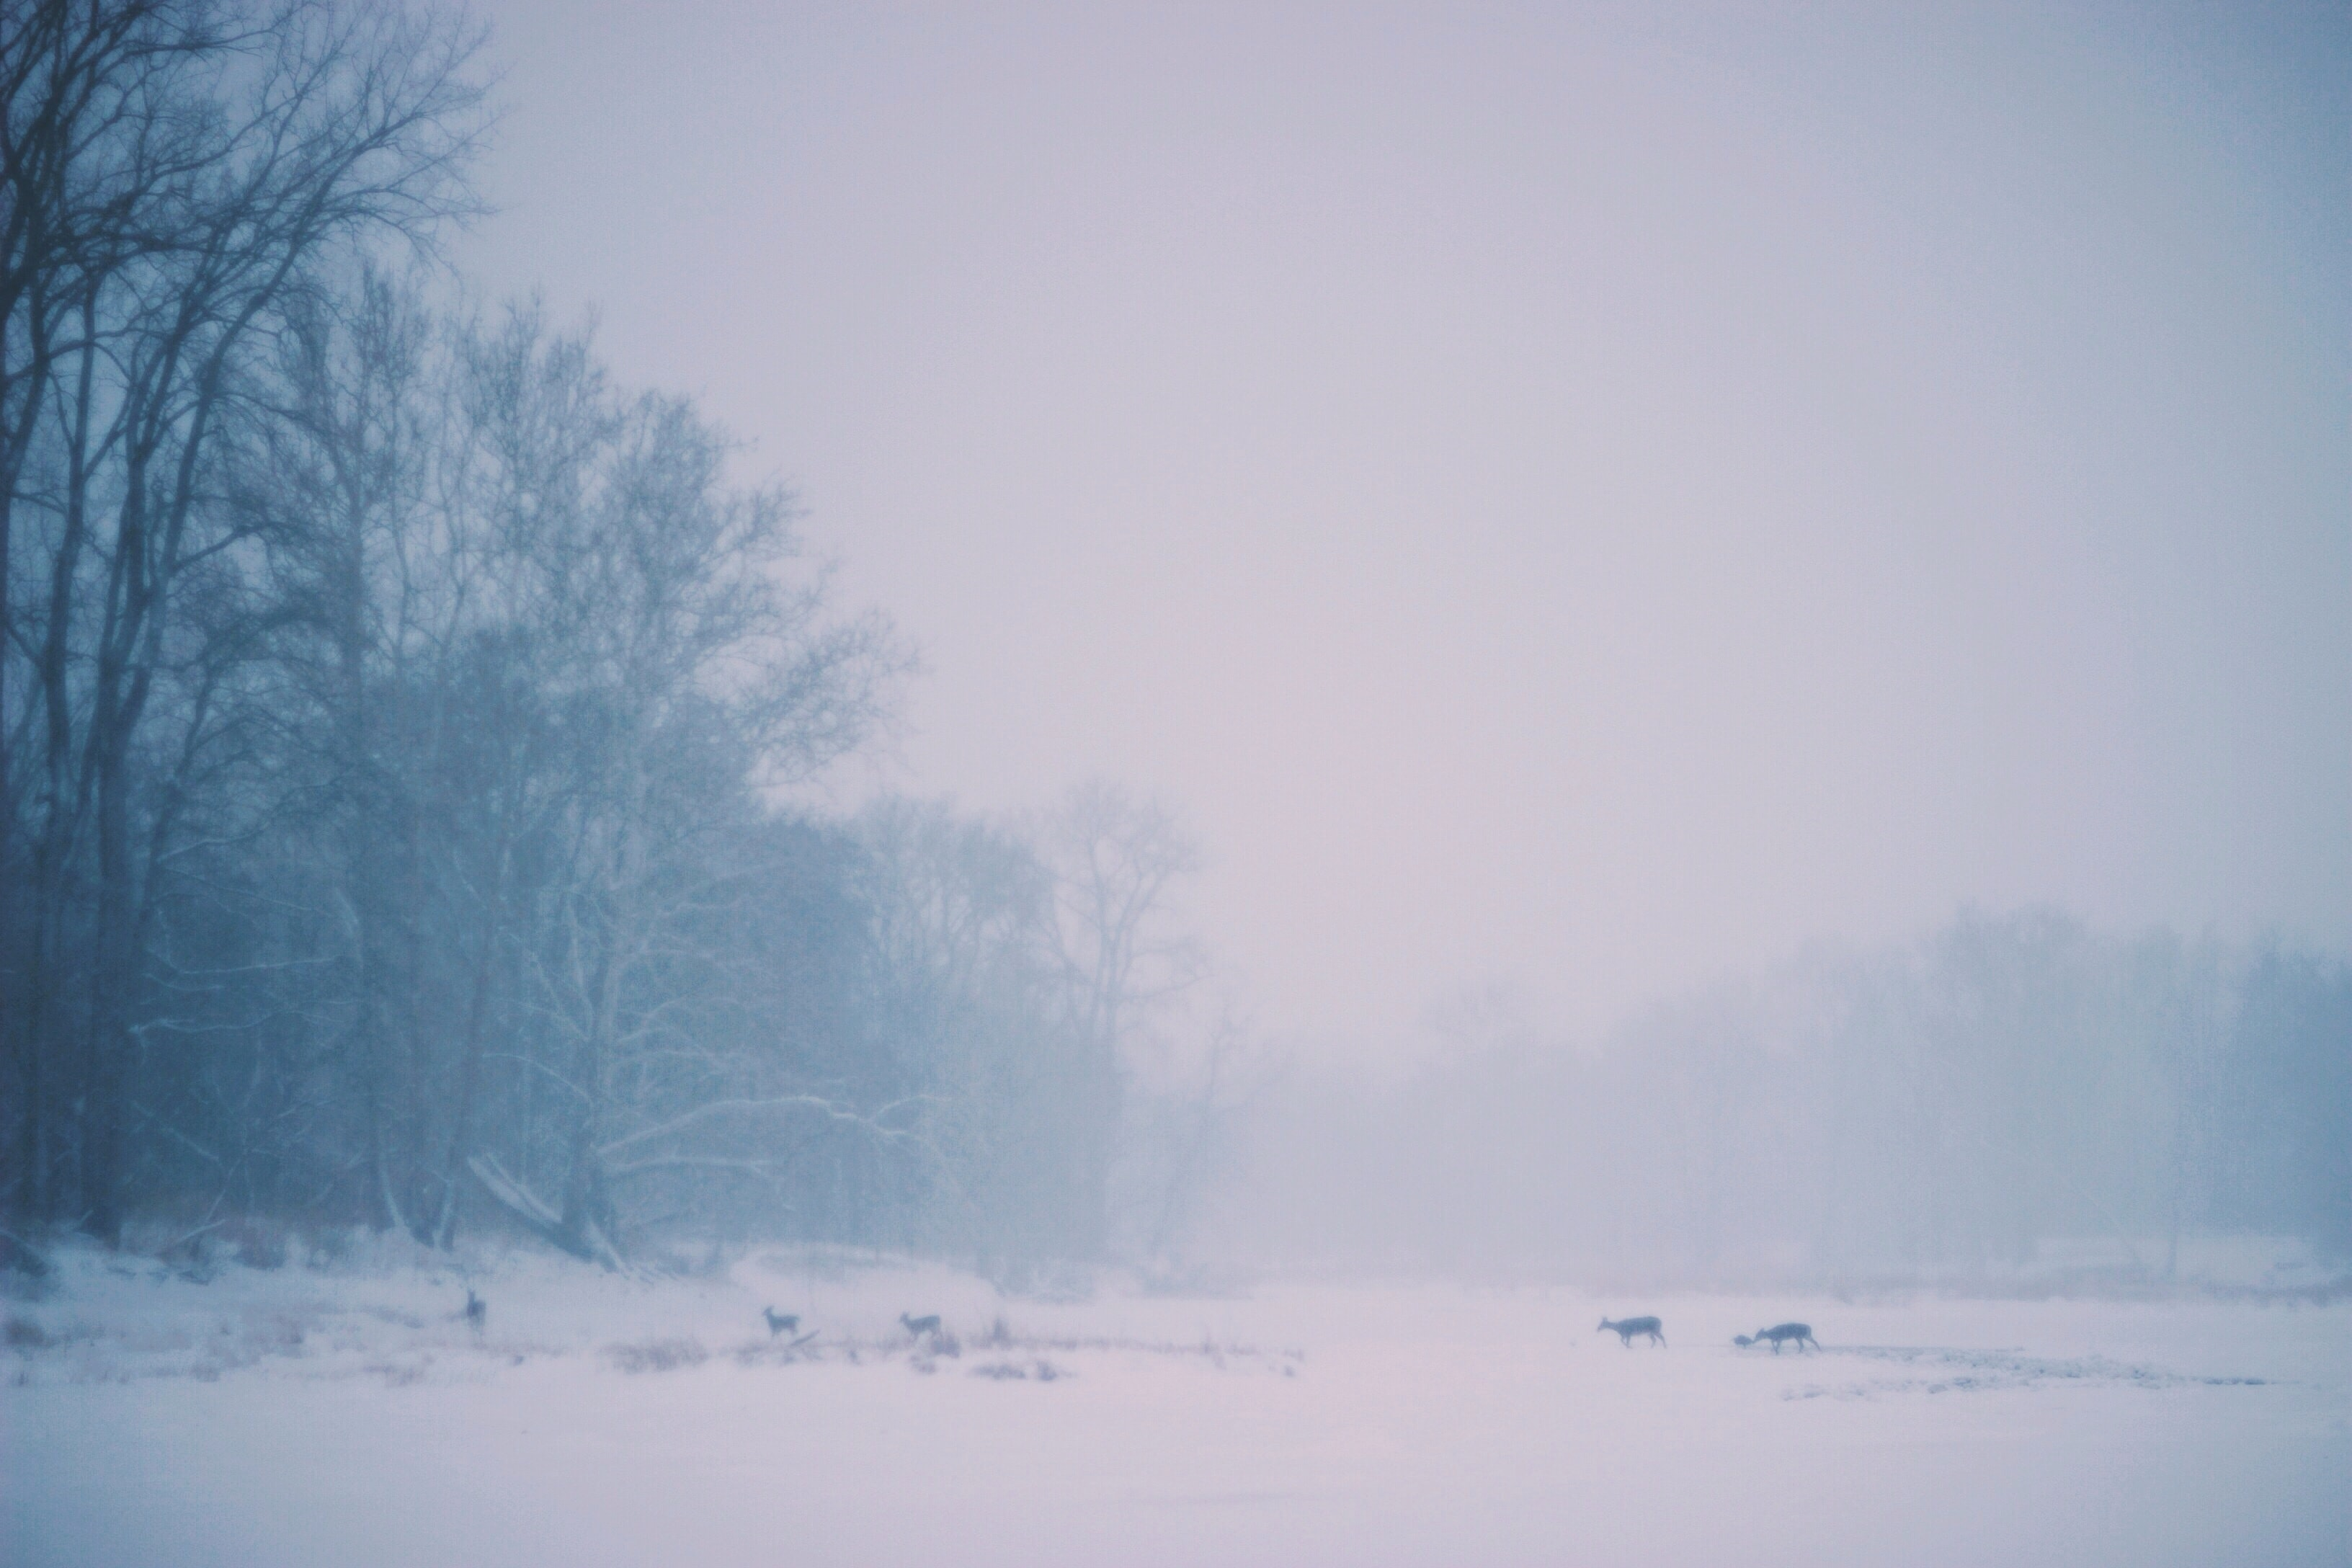 animal walking on land covered with snow near bare trees